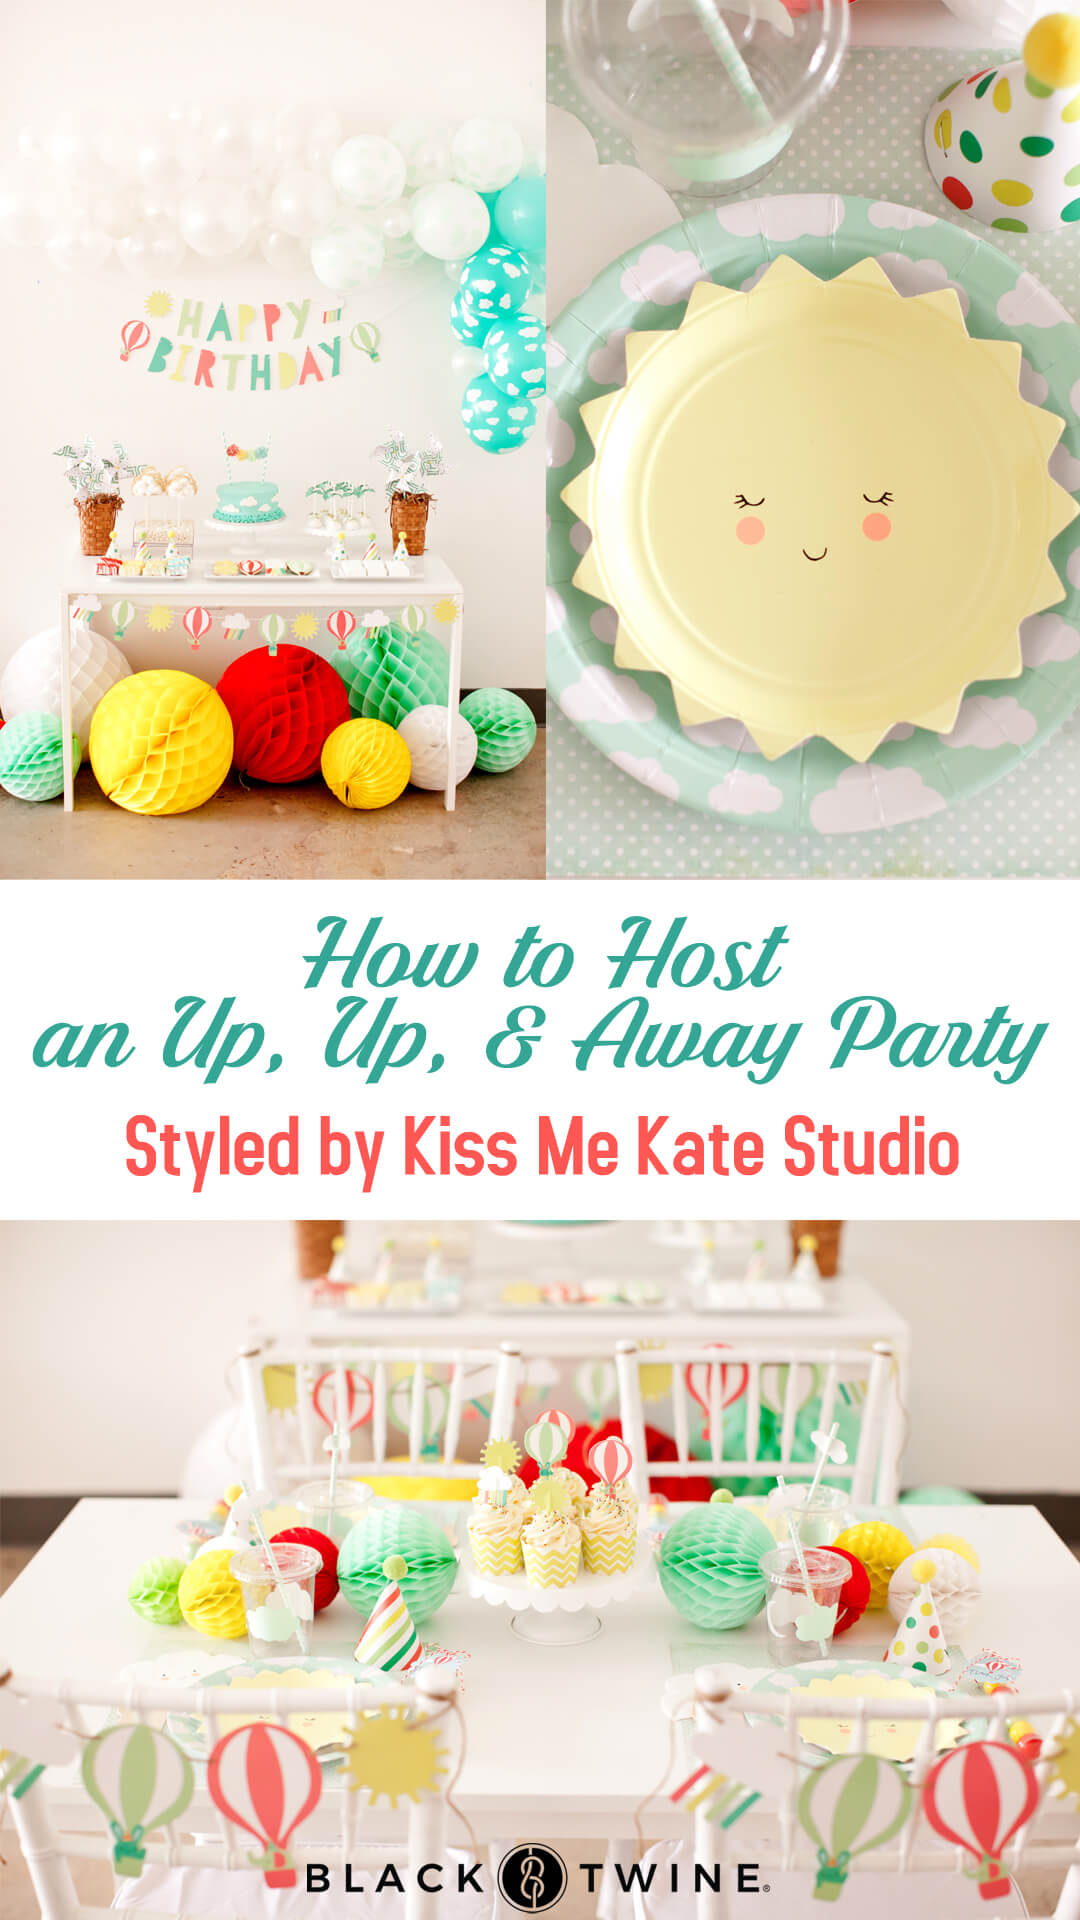 Tablescape, Place Setting from Up, Up, & Away Party Styled by Kiss Me Kate Studio | Black Twine